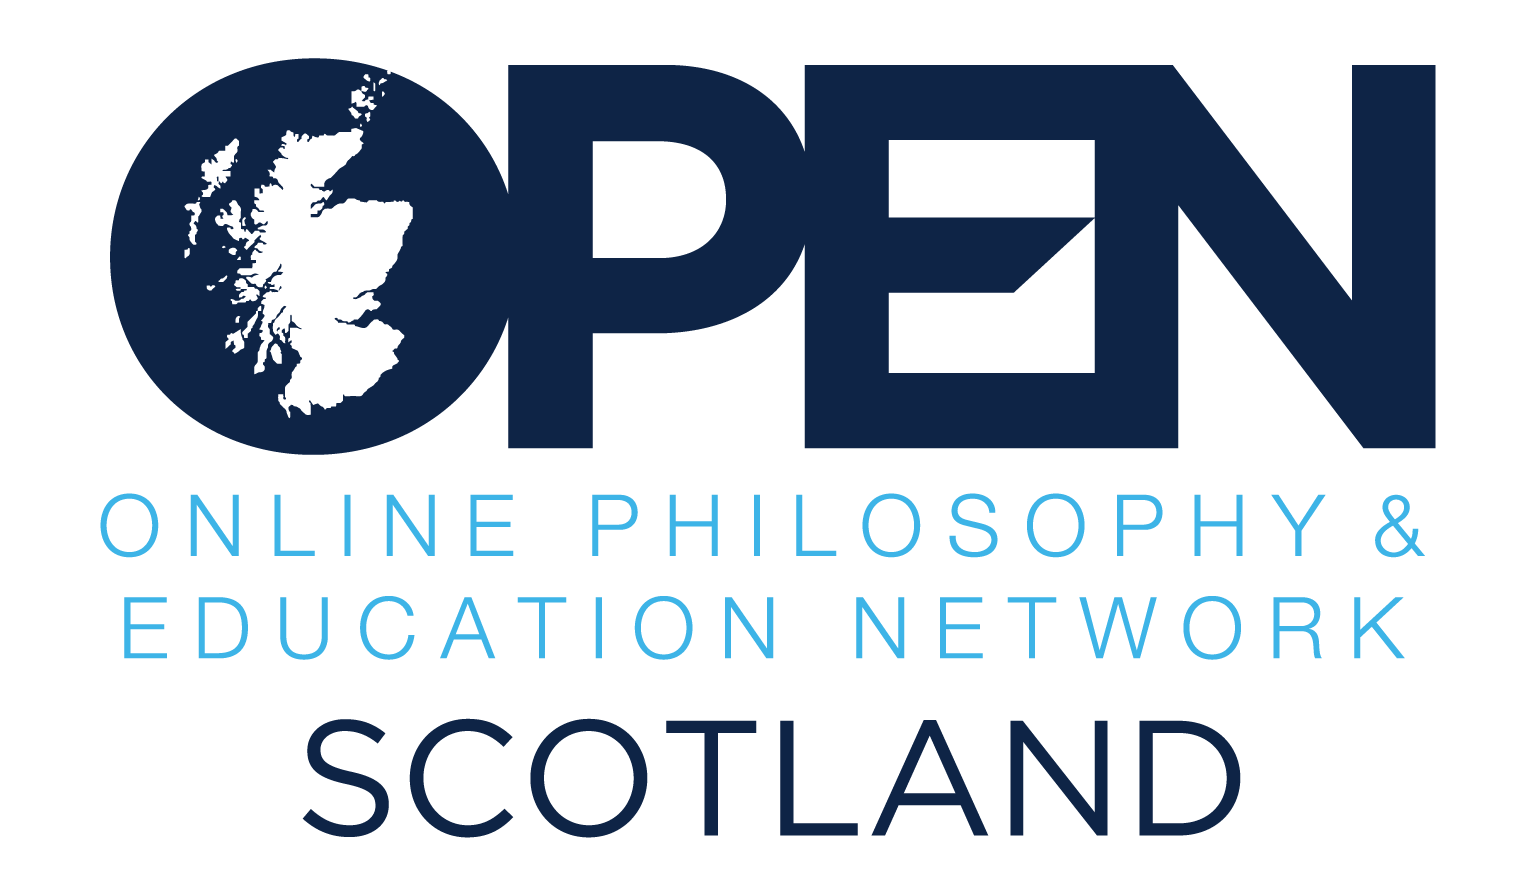 OPEN Scotland – Online Philosophy and Education Network for Scotland